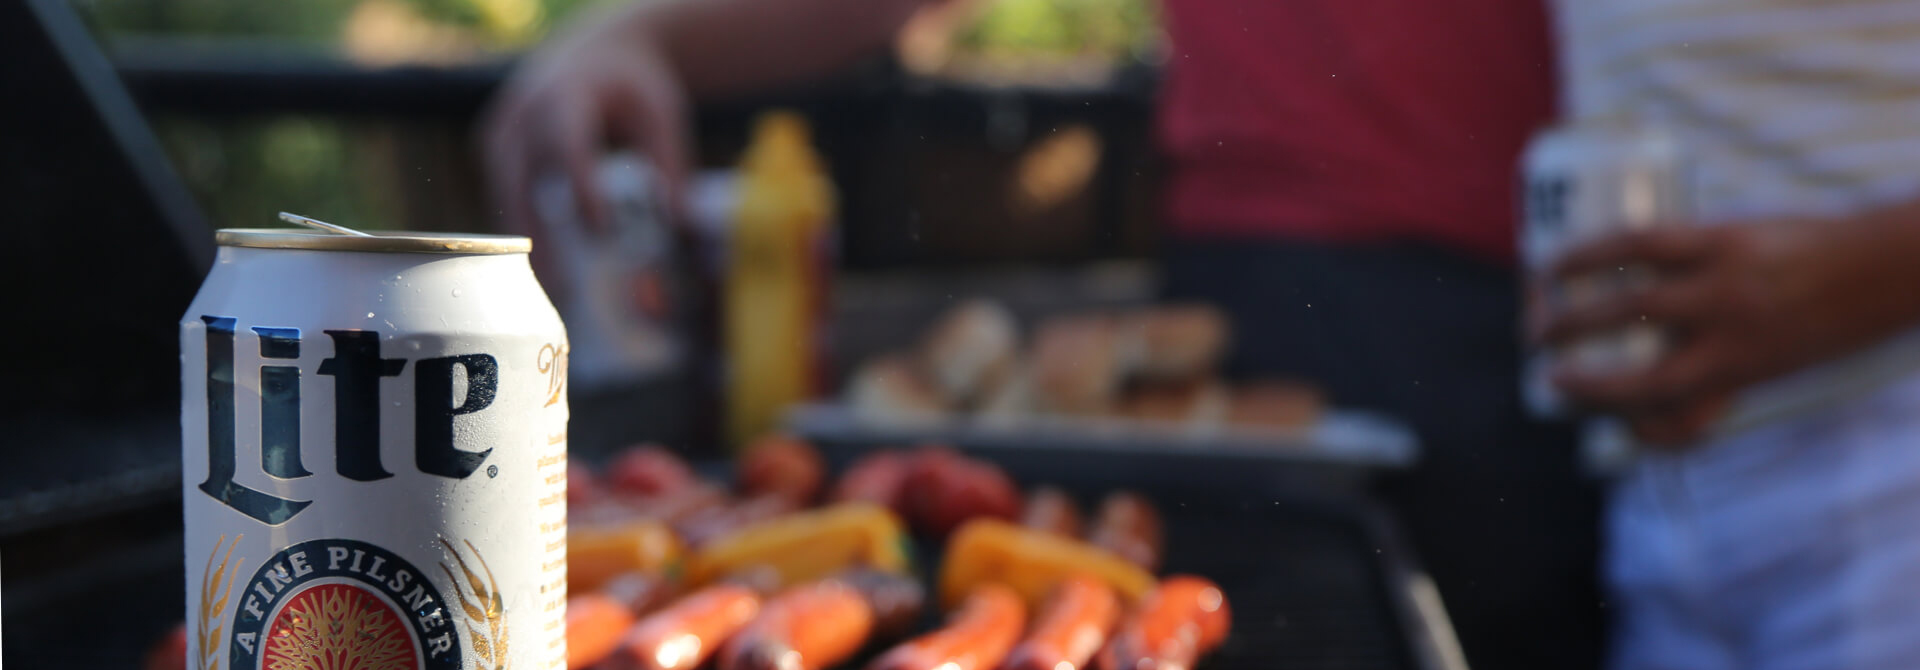 Miller Lite can and grill with sausages